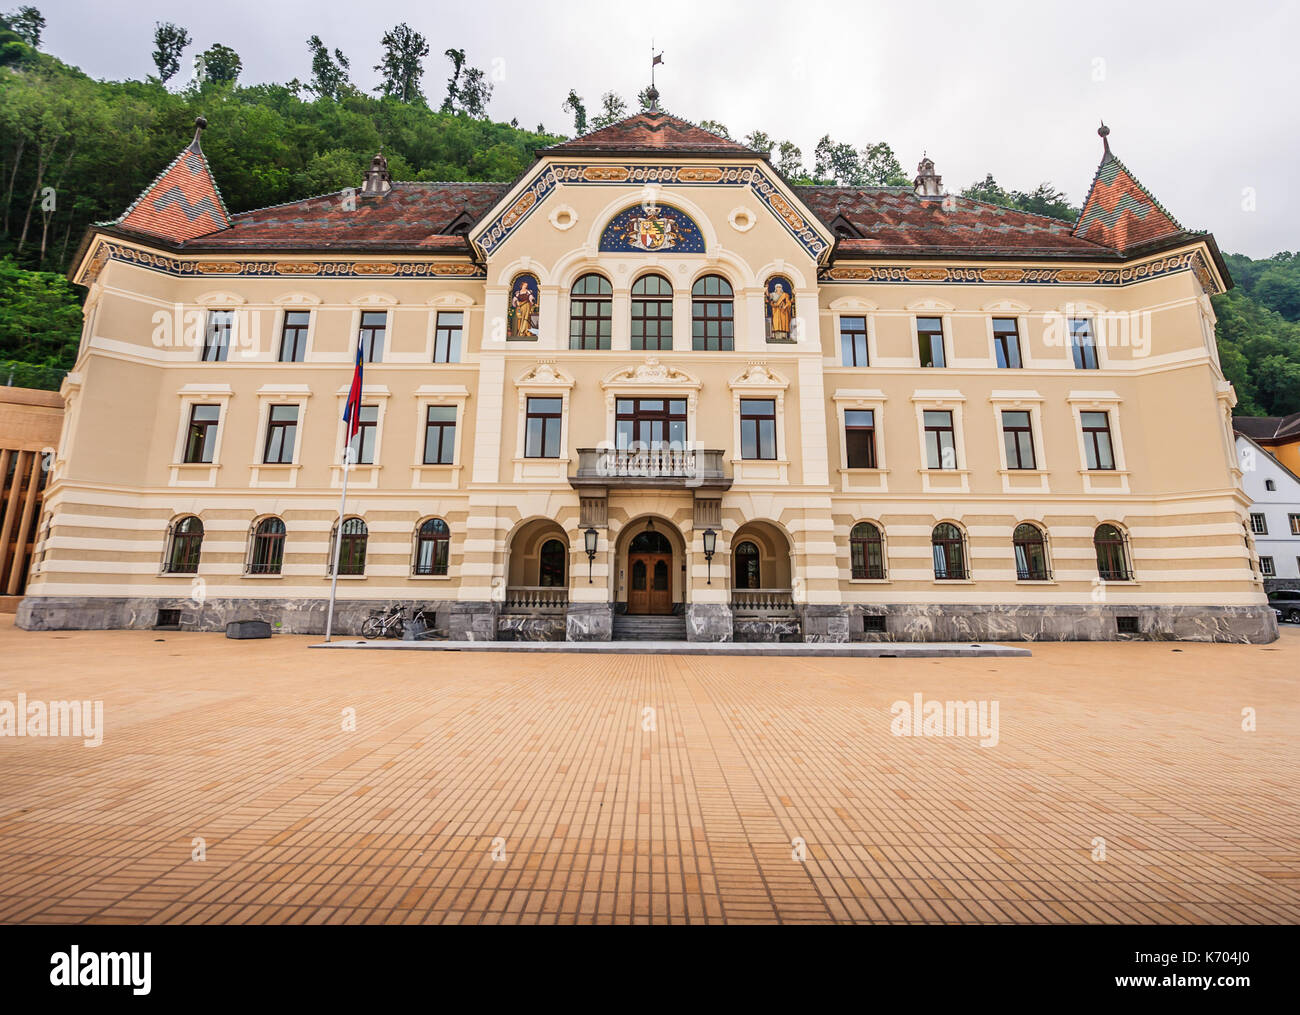 Parliament building in Vaduz, Liechtenstein, Europe. Stock Photo